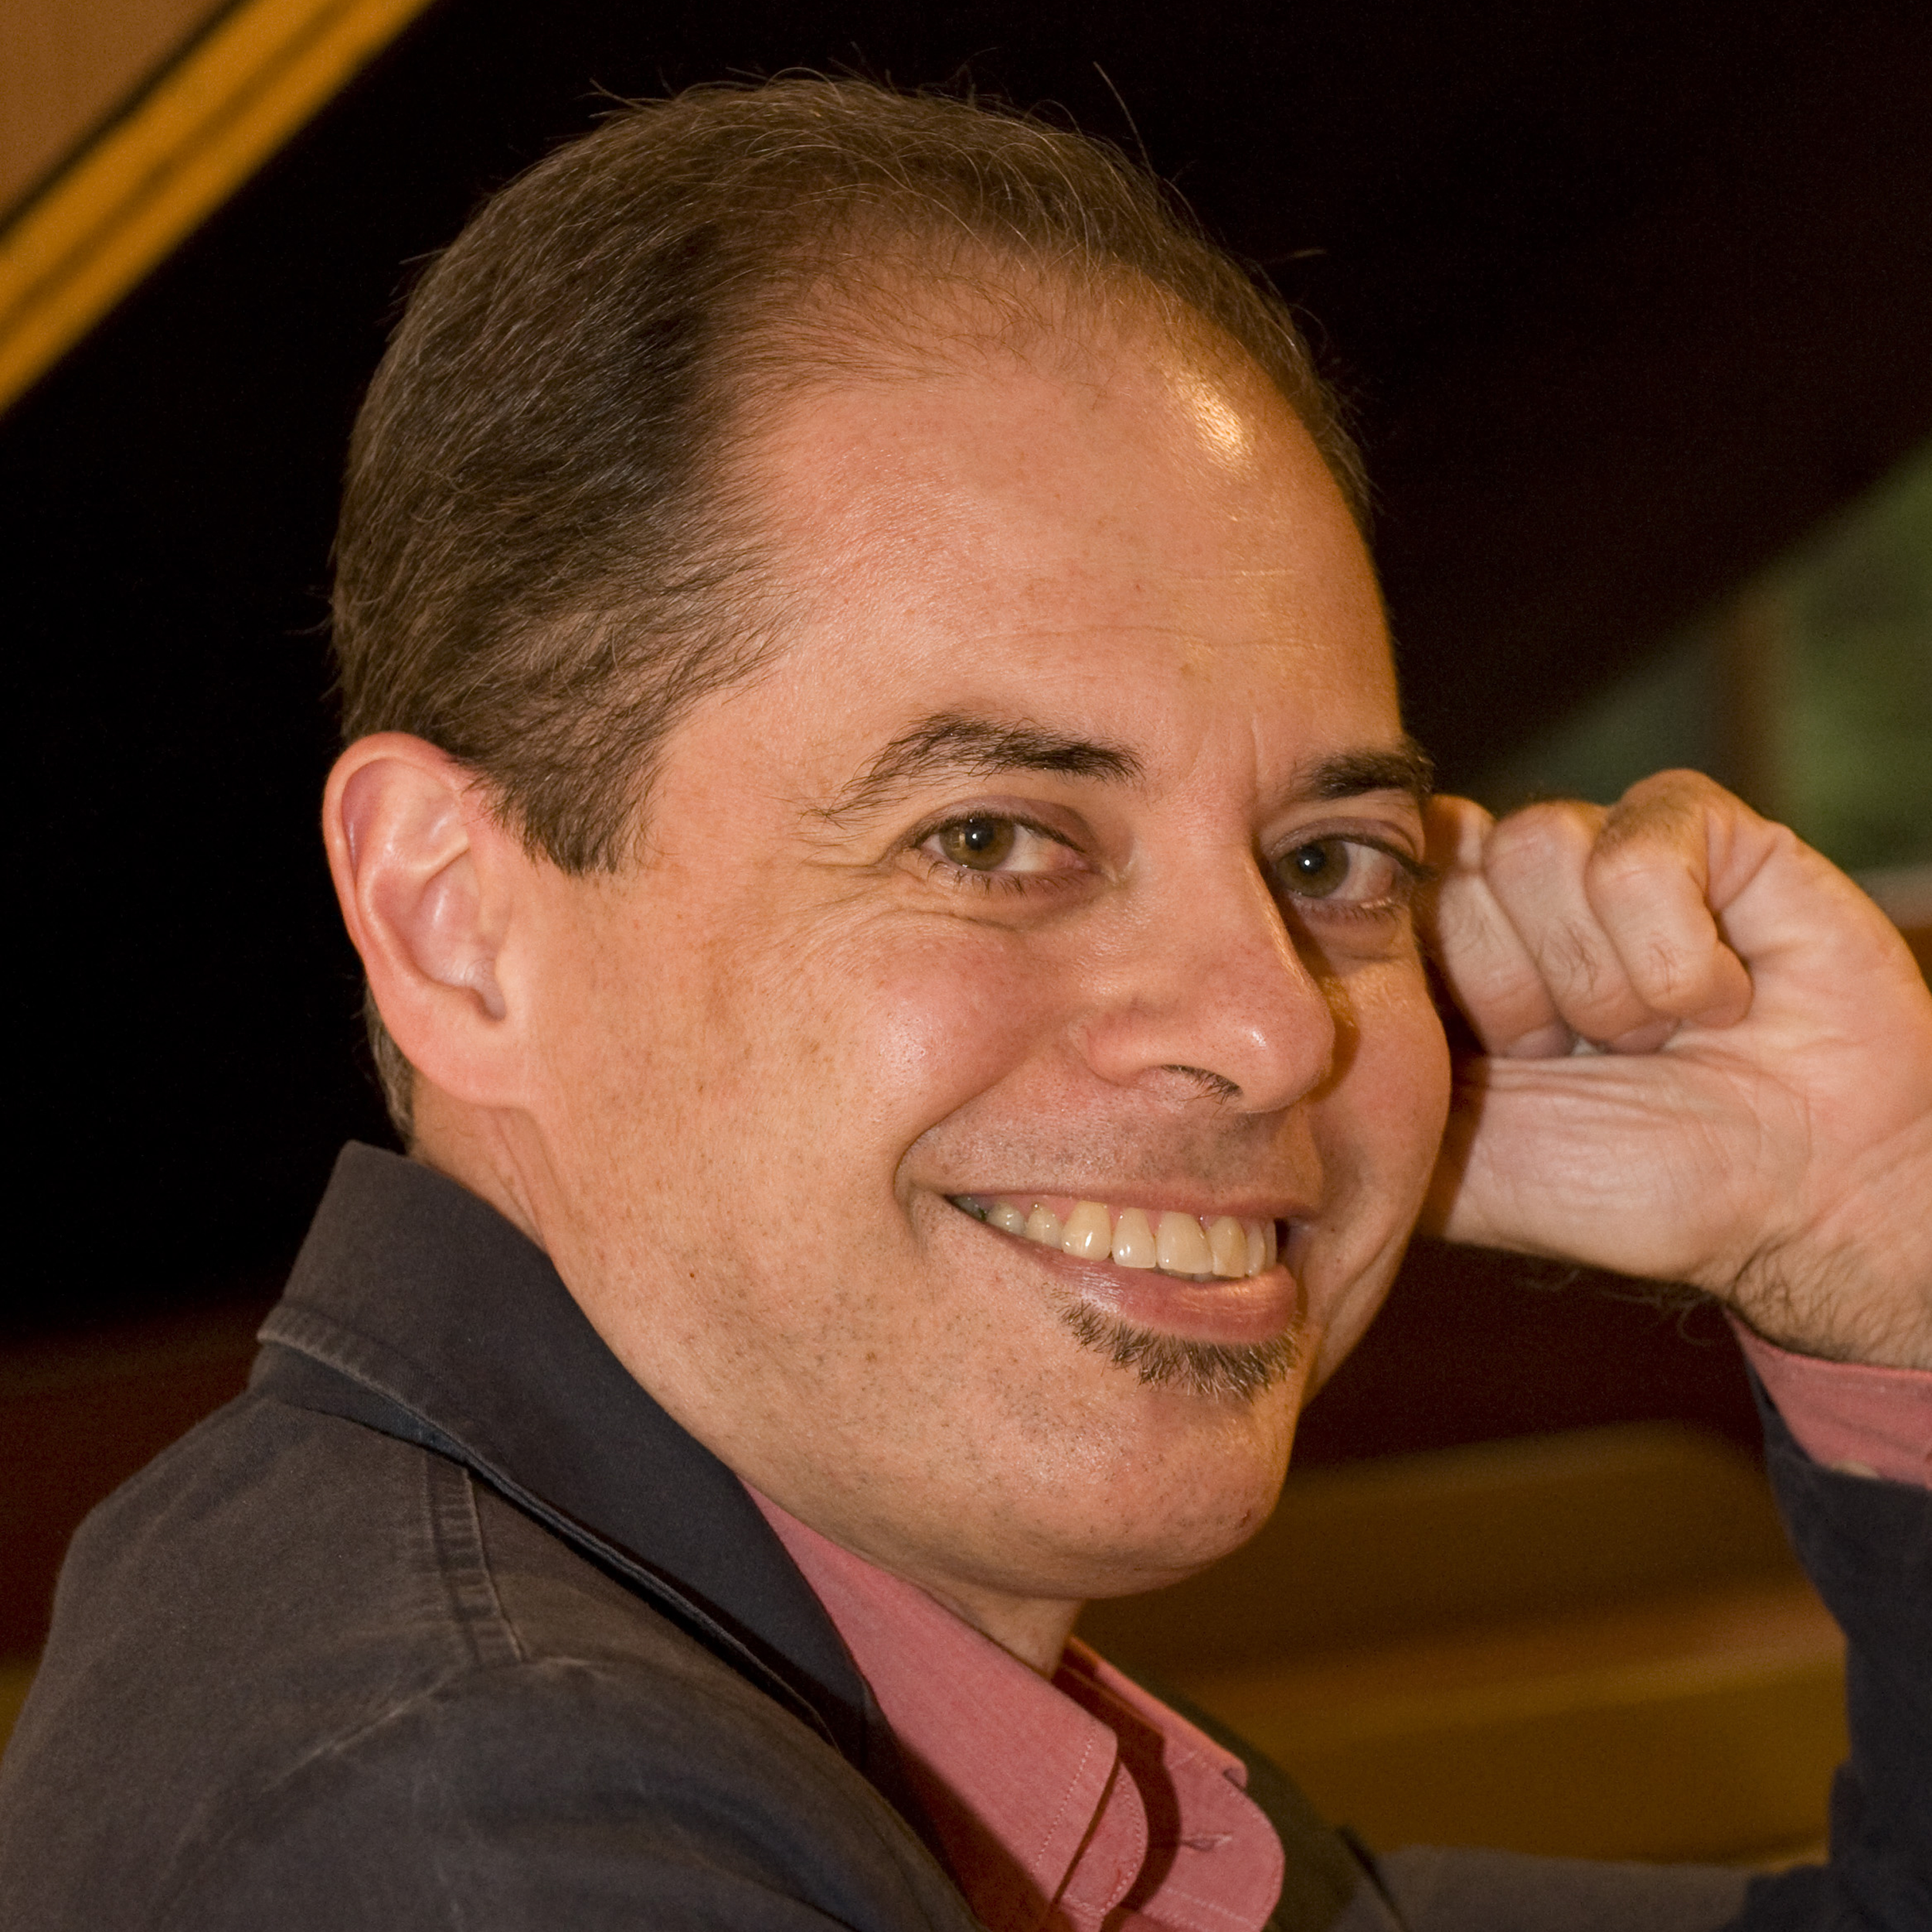 Jorge Martín composer - Click here to read interview.